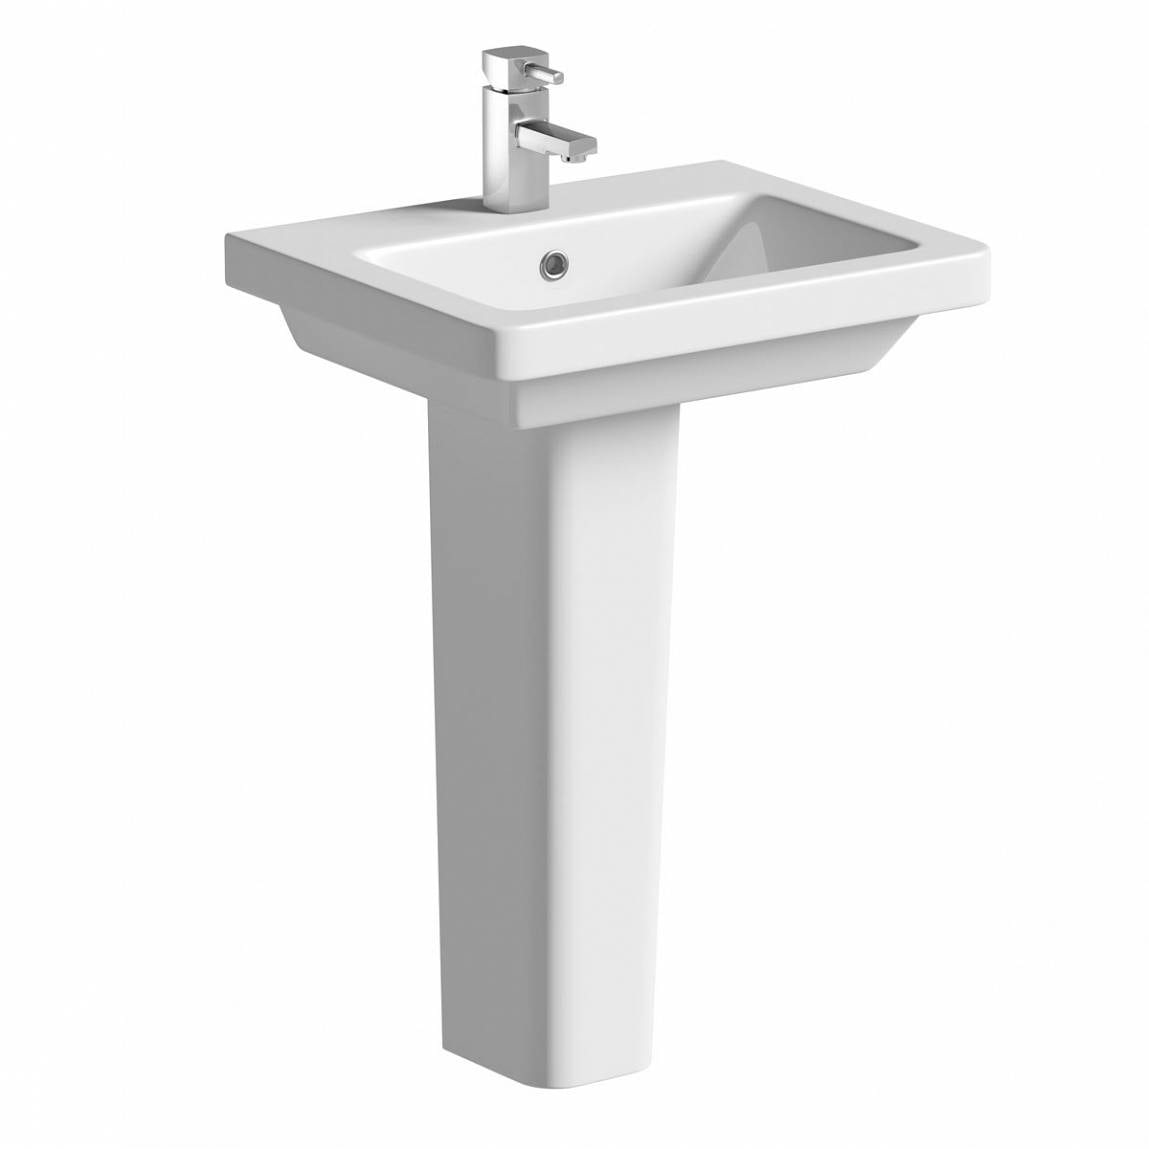 Mode Cooper 1 tap hole full pedestal basin 550mm with waste